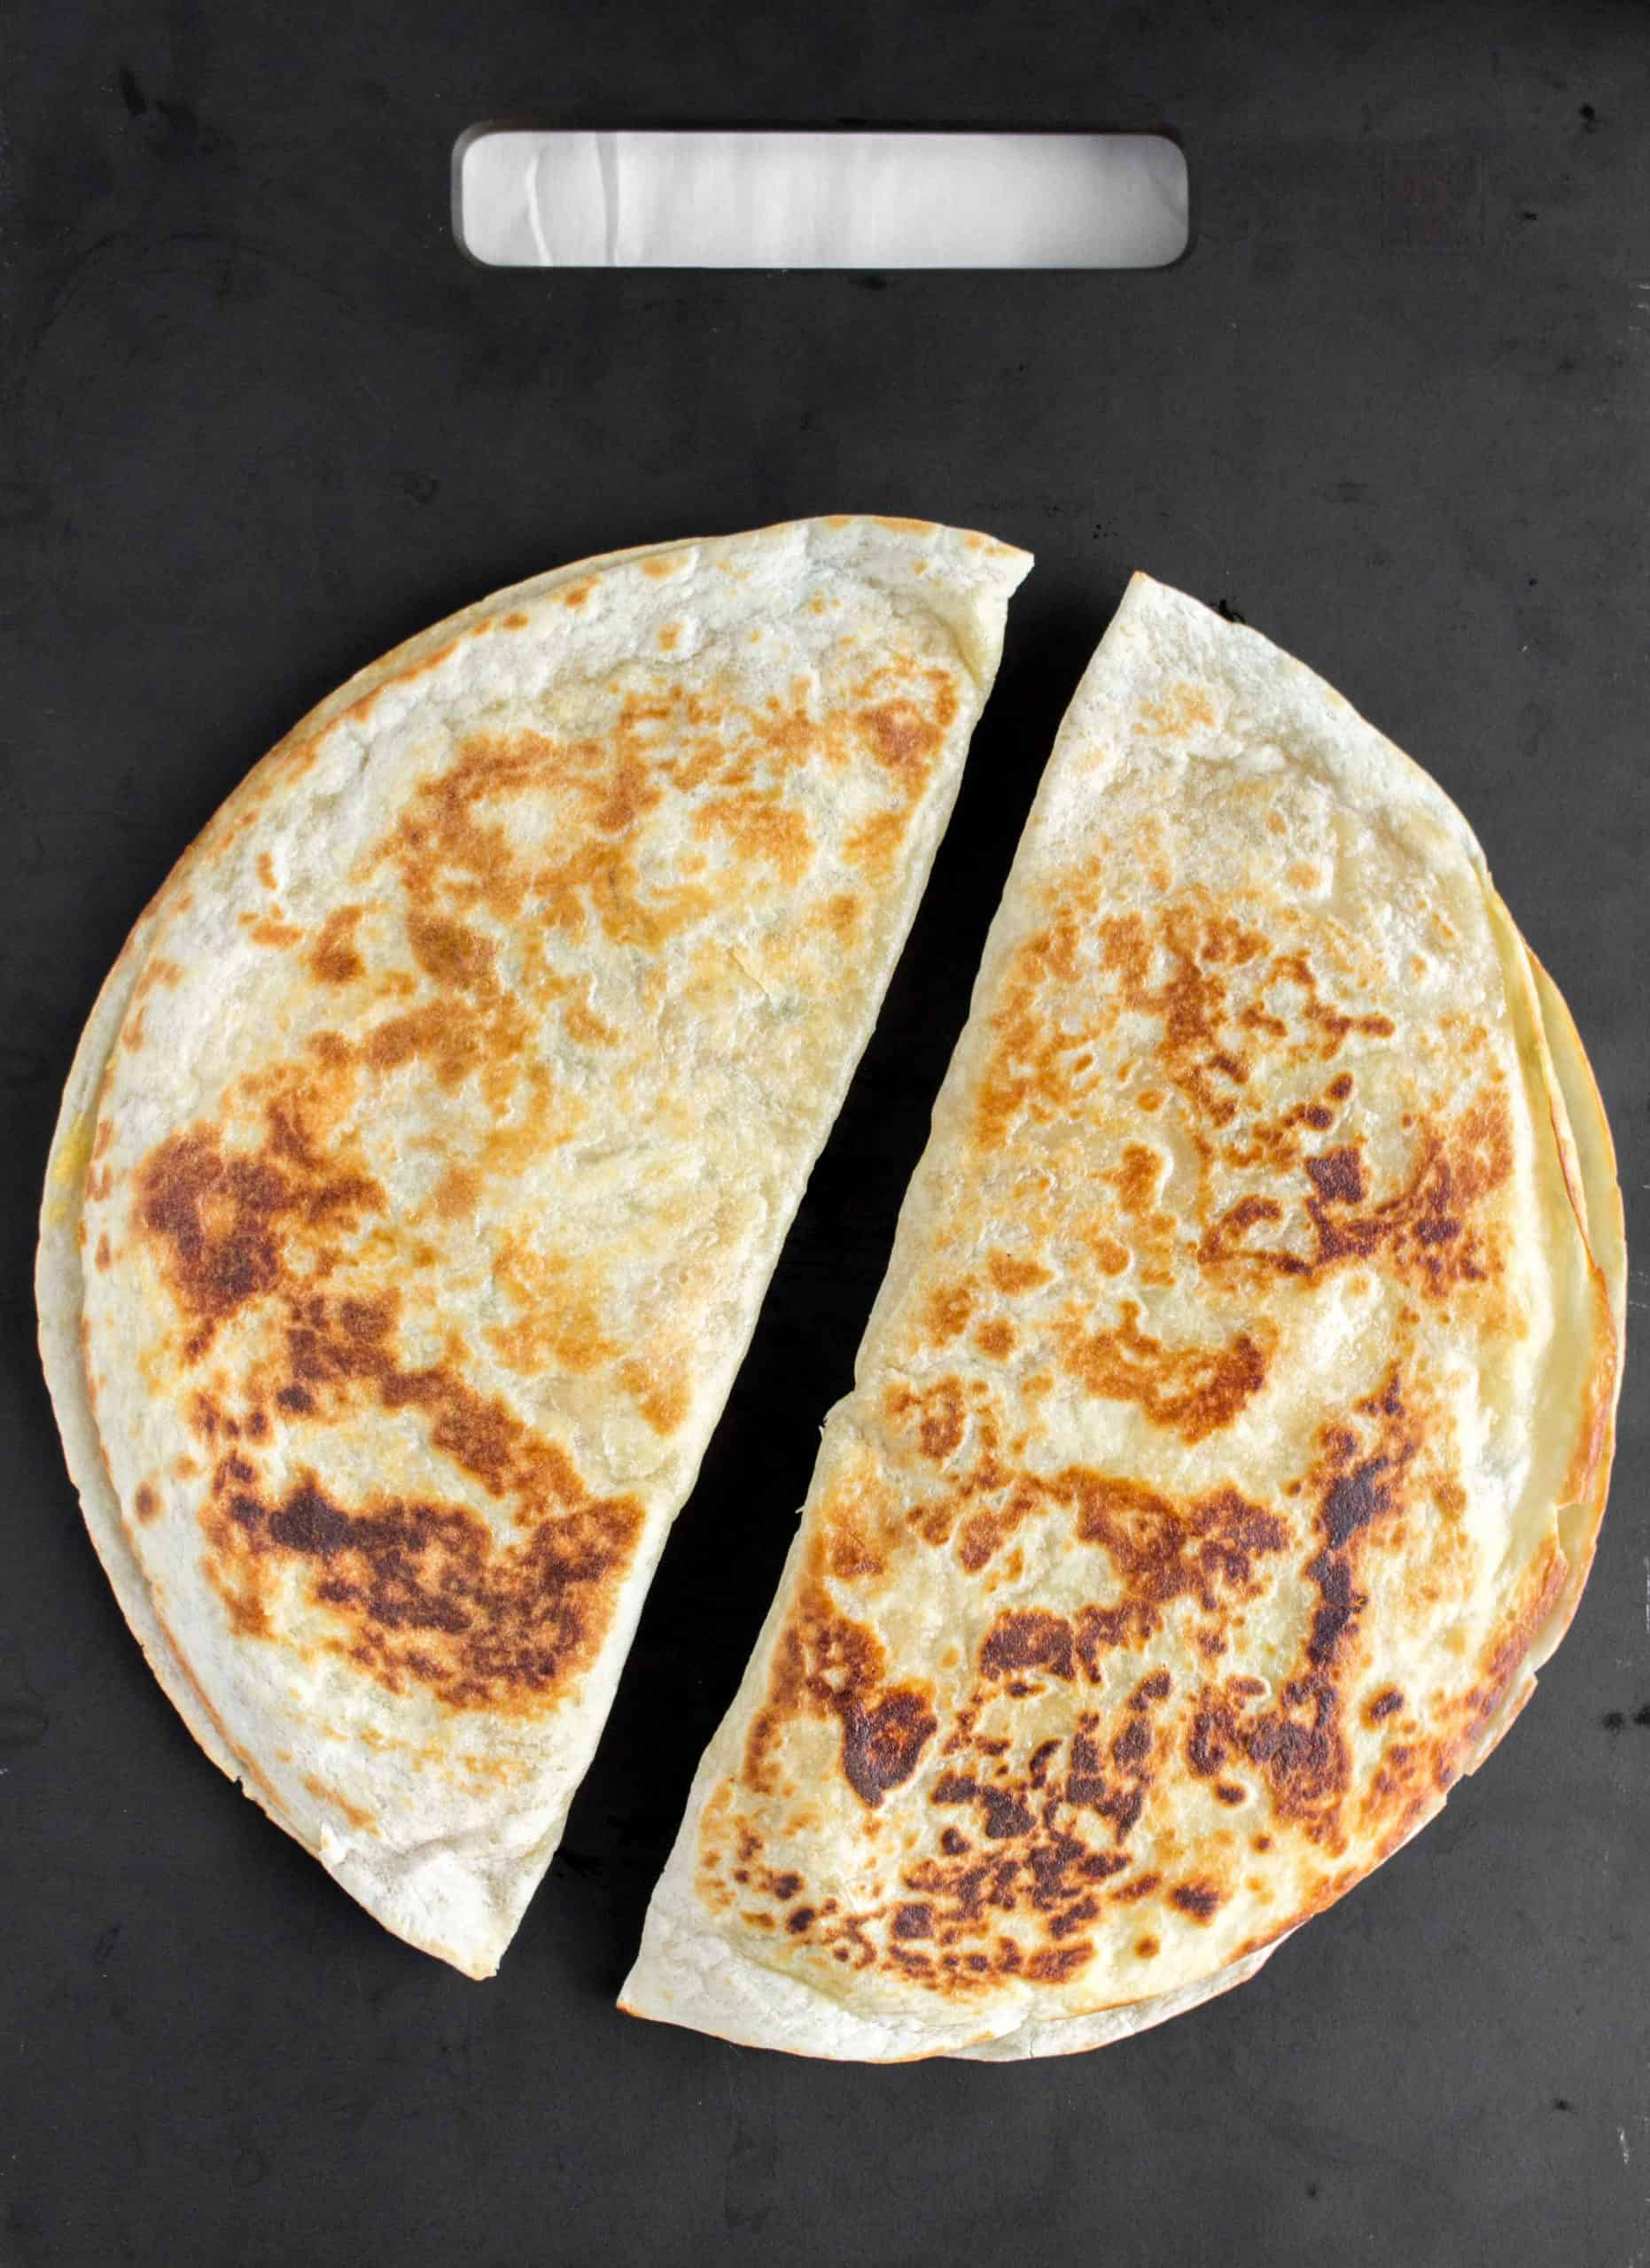 Two chicken and hummus quesadillas on a black surface.